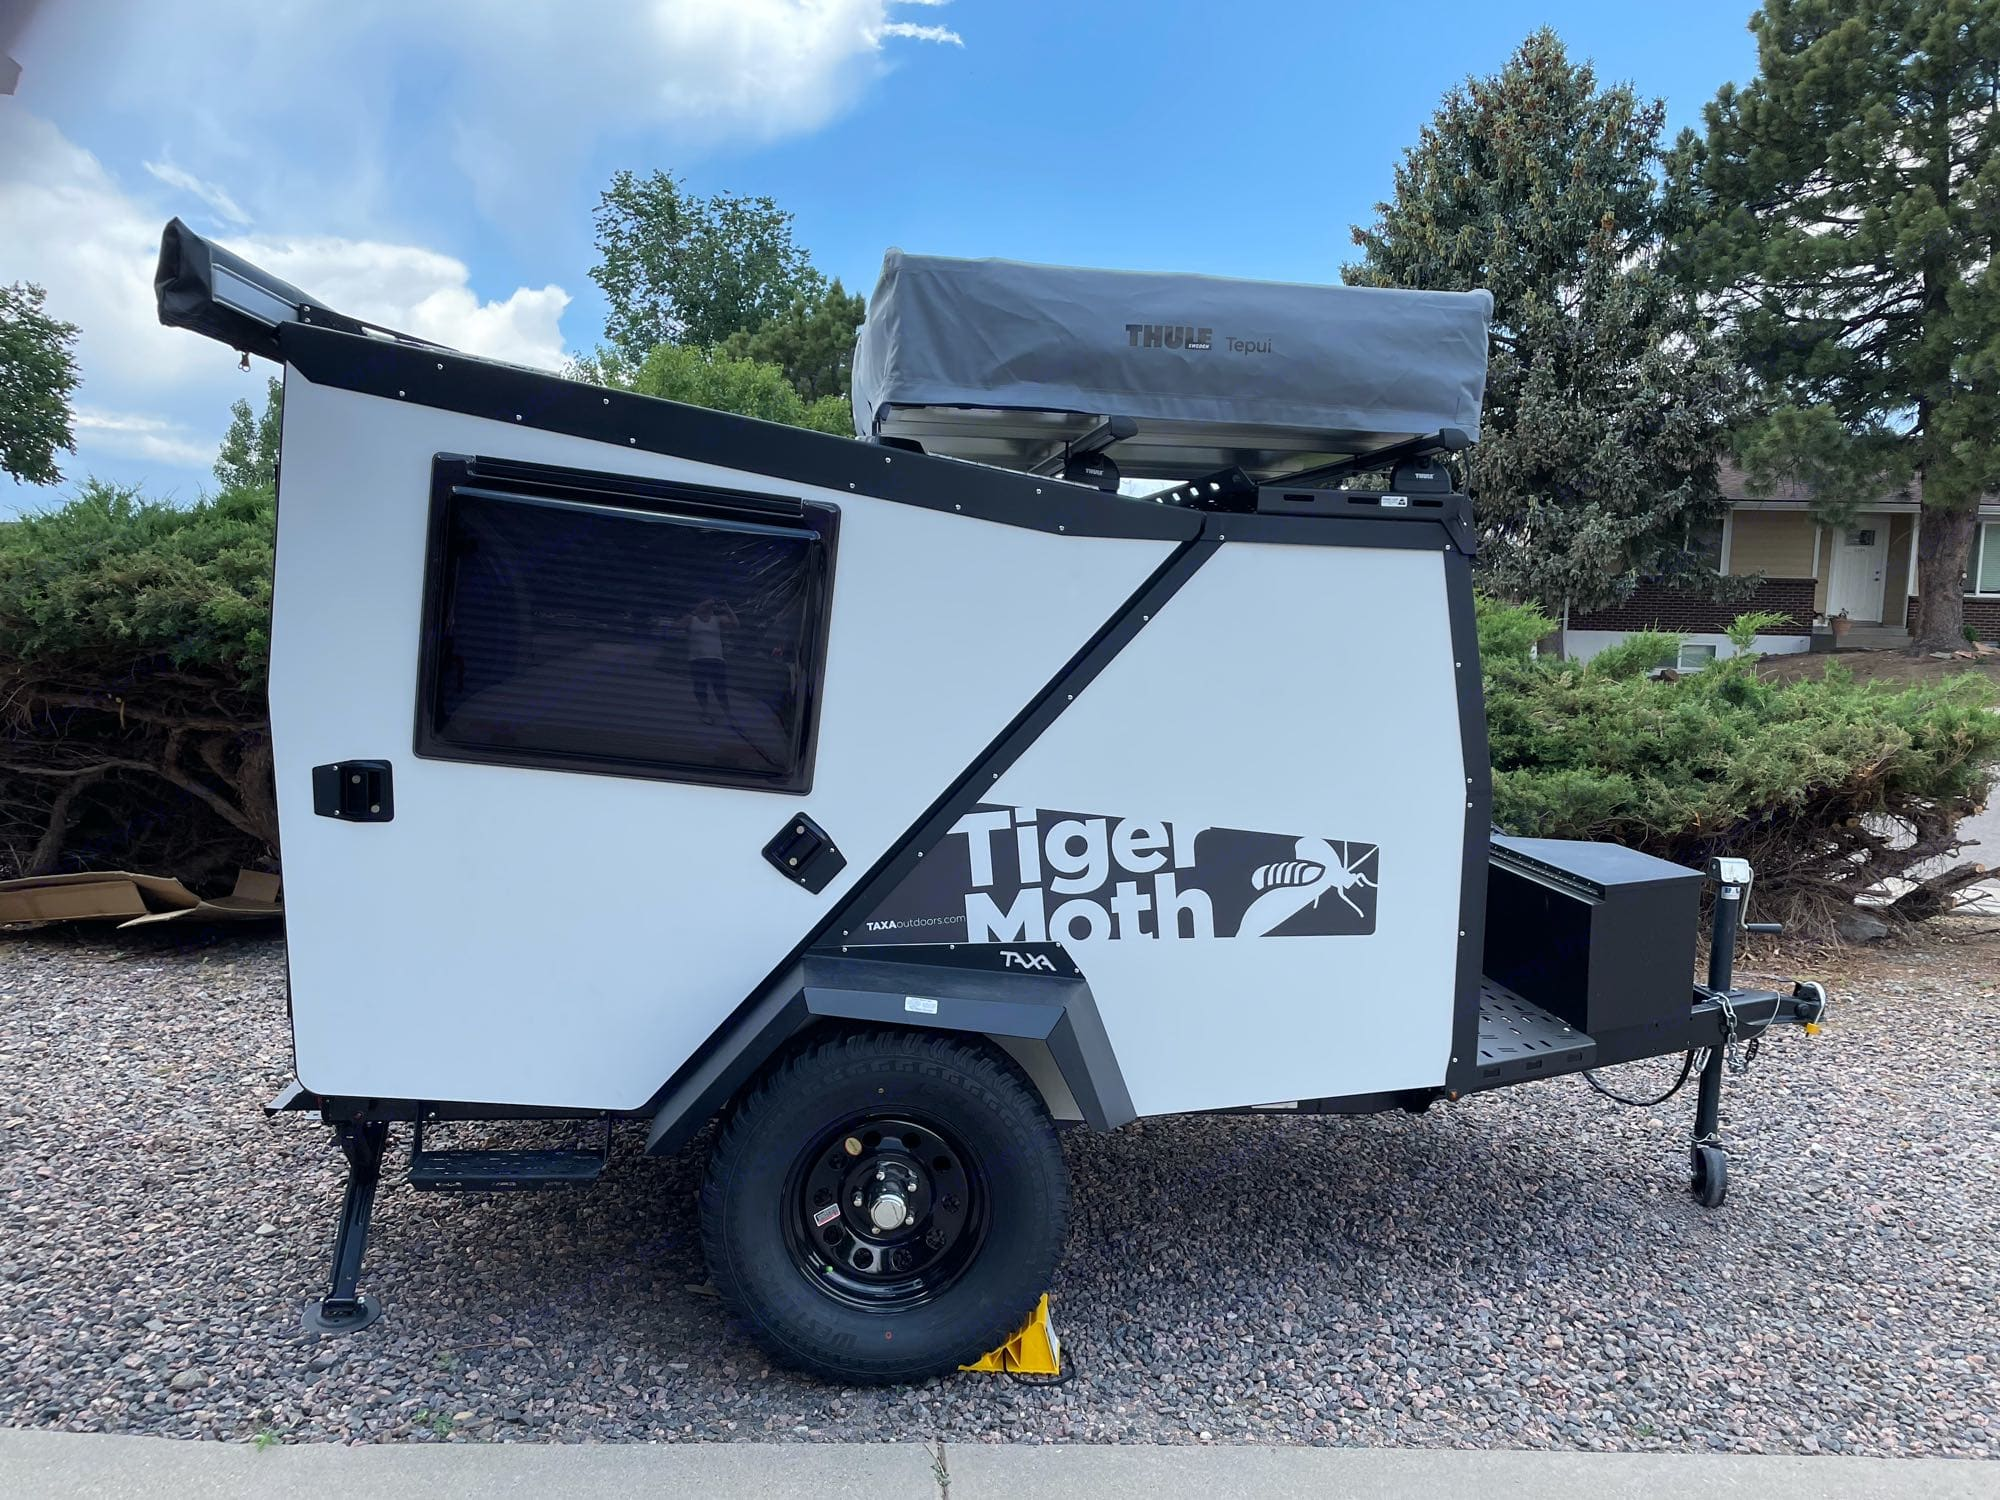 The TigerMoth folded up and ready to travel.. TAXA Outdoors Tigermoth Camper 2021